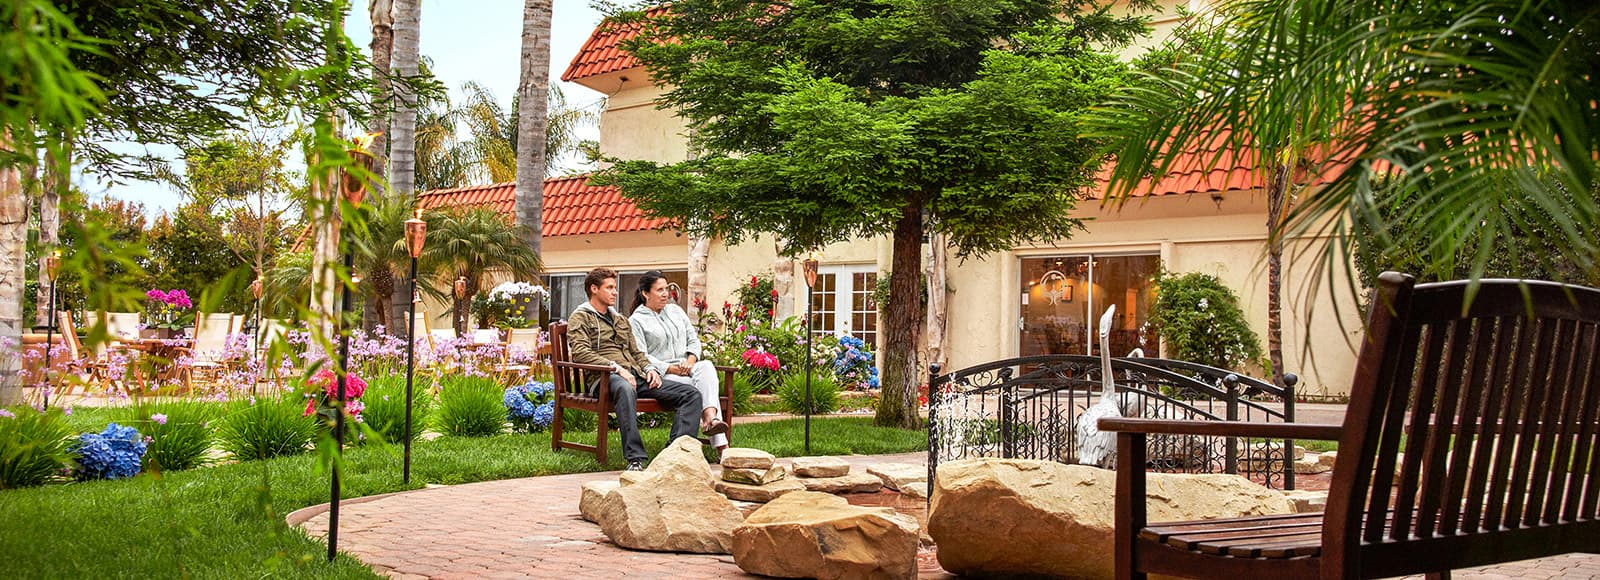 Available Opportunities at Passages Ventura